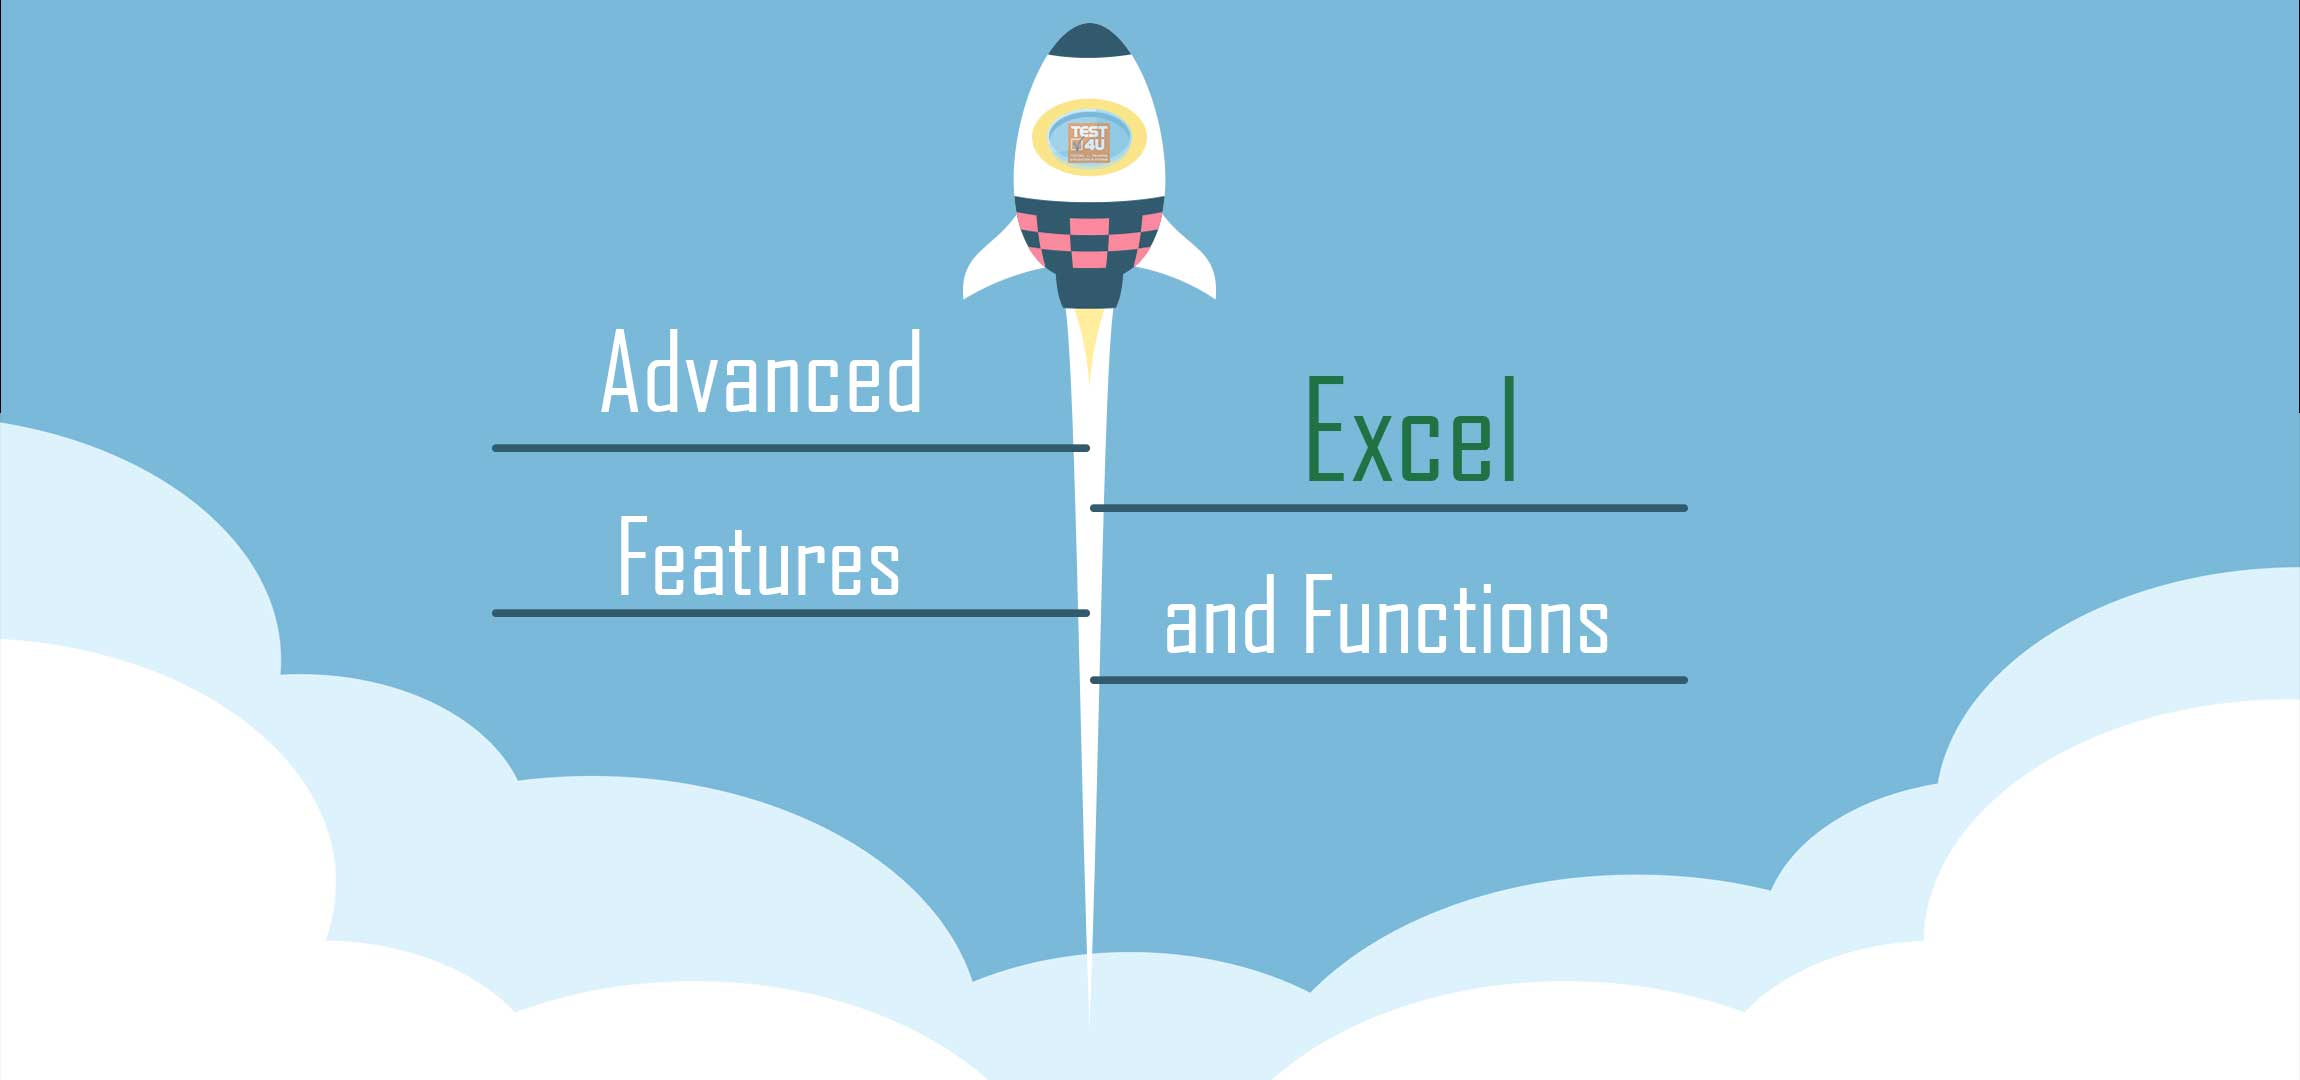 advanced excel functions and features